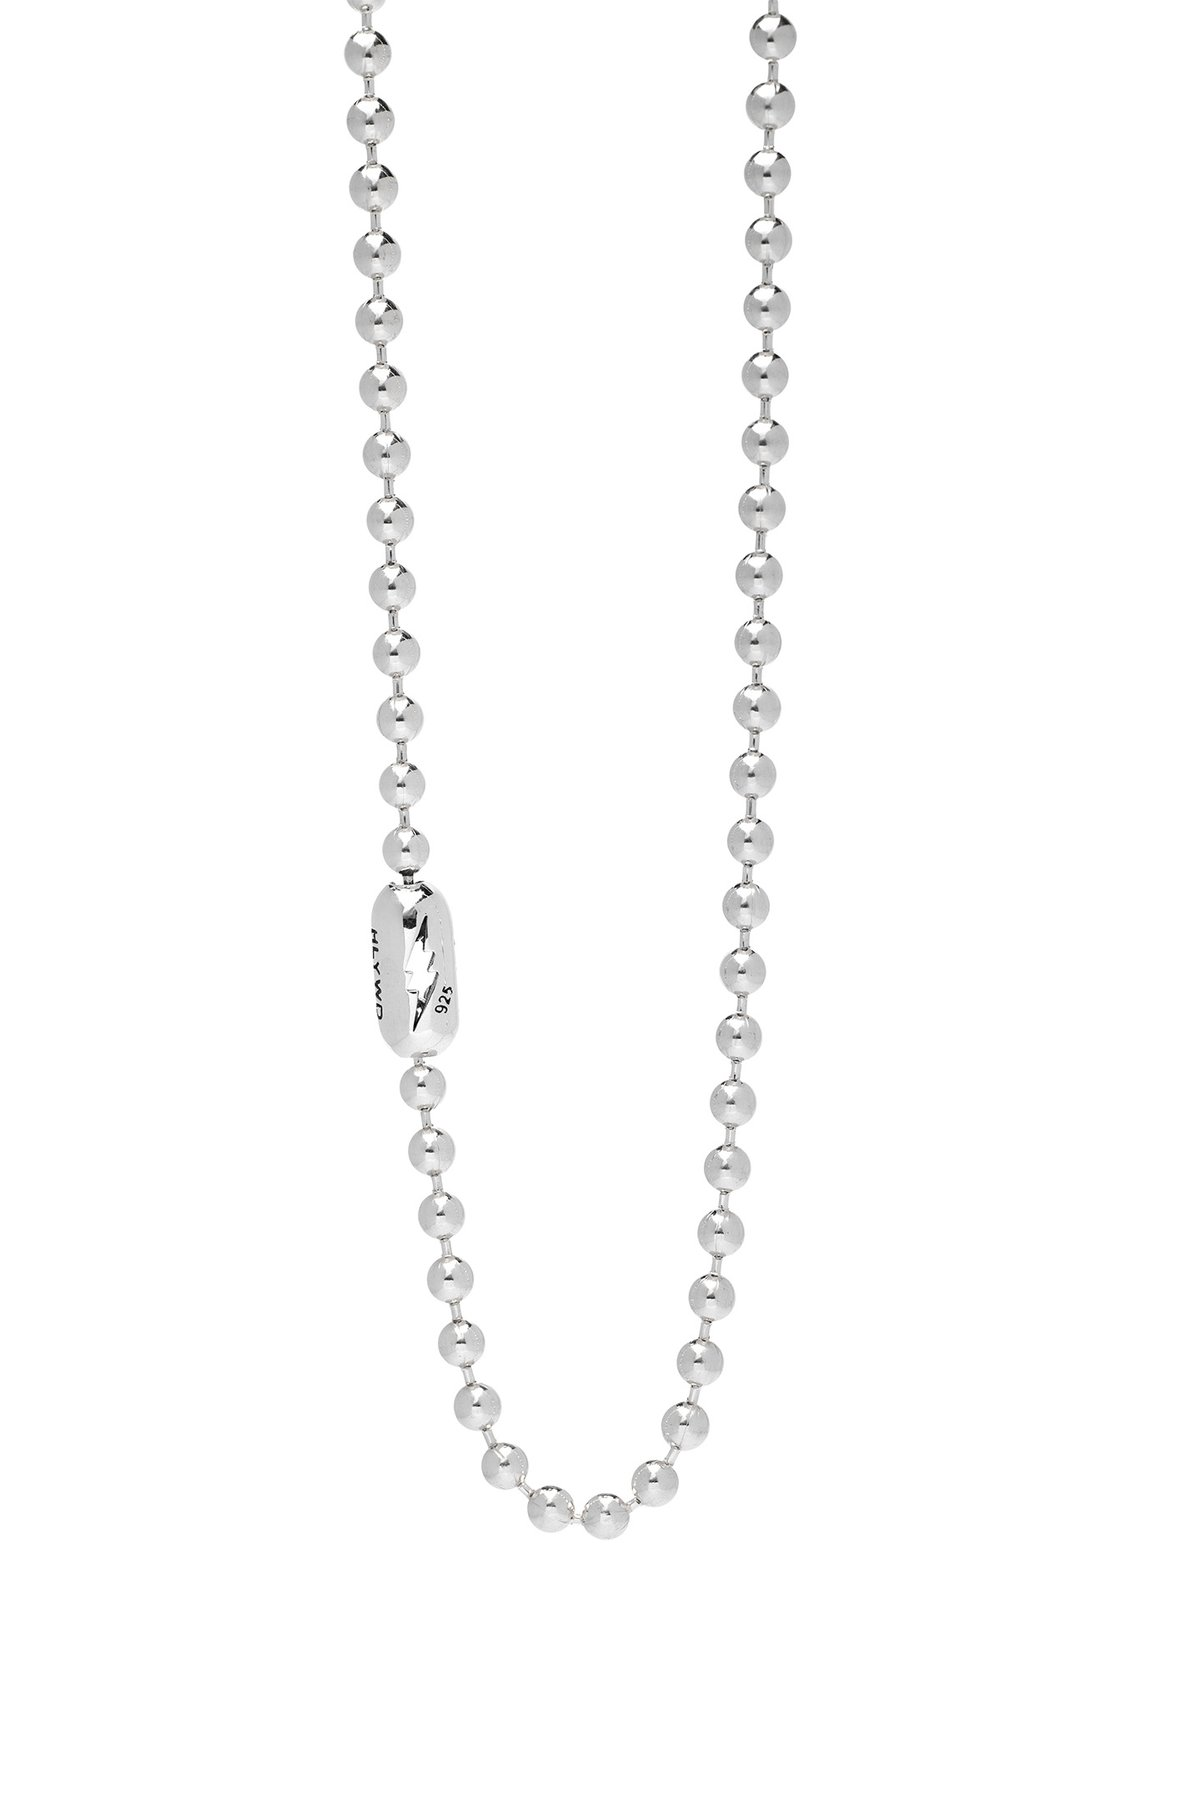 10 Ball Chain Necklace